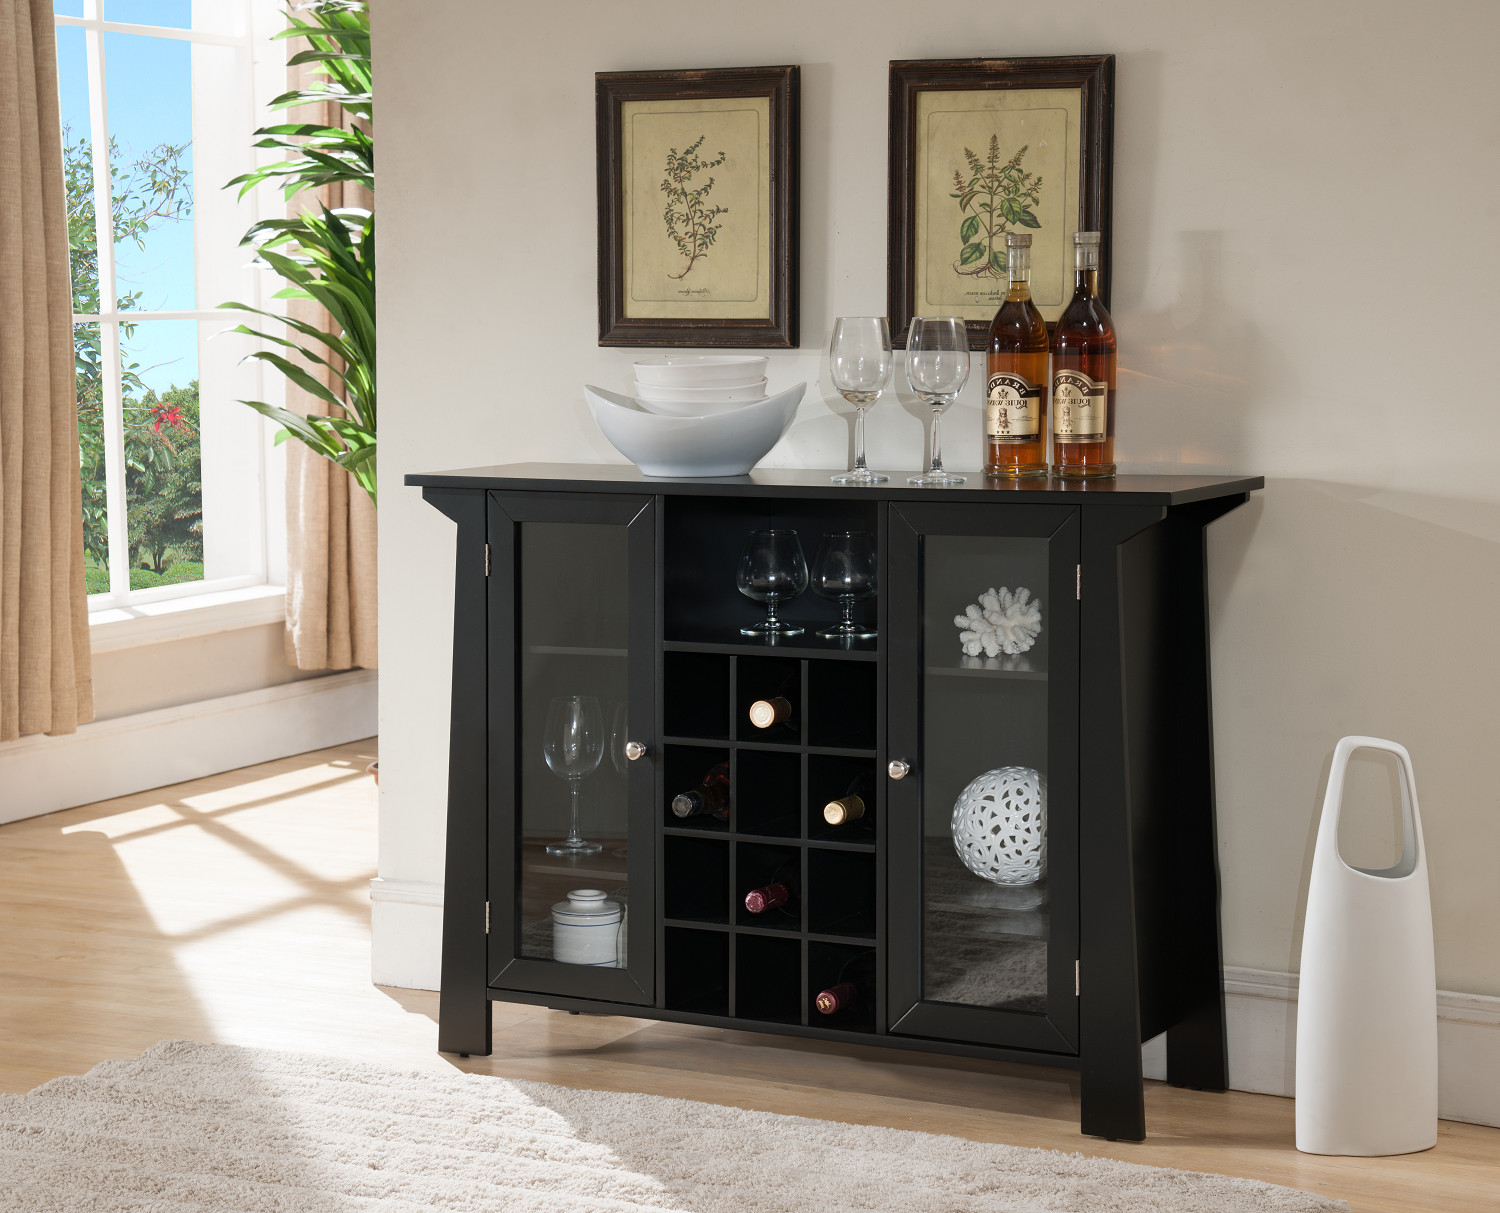 Buffet Sideboard With Wine Rack Jesse Black Wood Contemporary Wine Rack Sideboard Buffet Display Console Table With Glass Cabinet Storage Doors Shelf